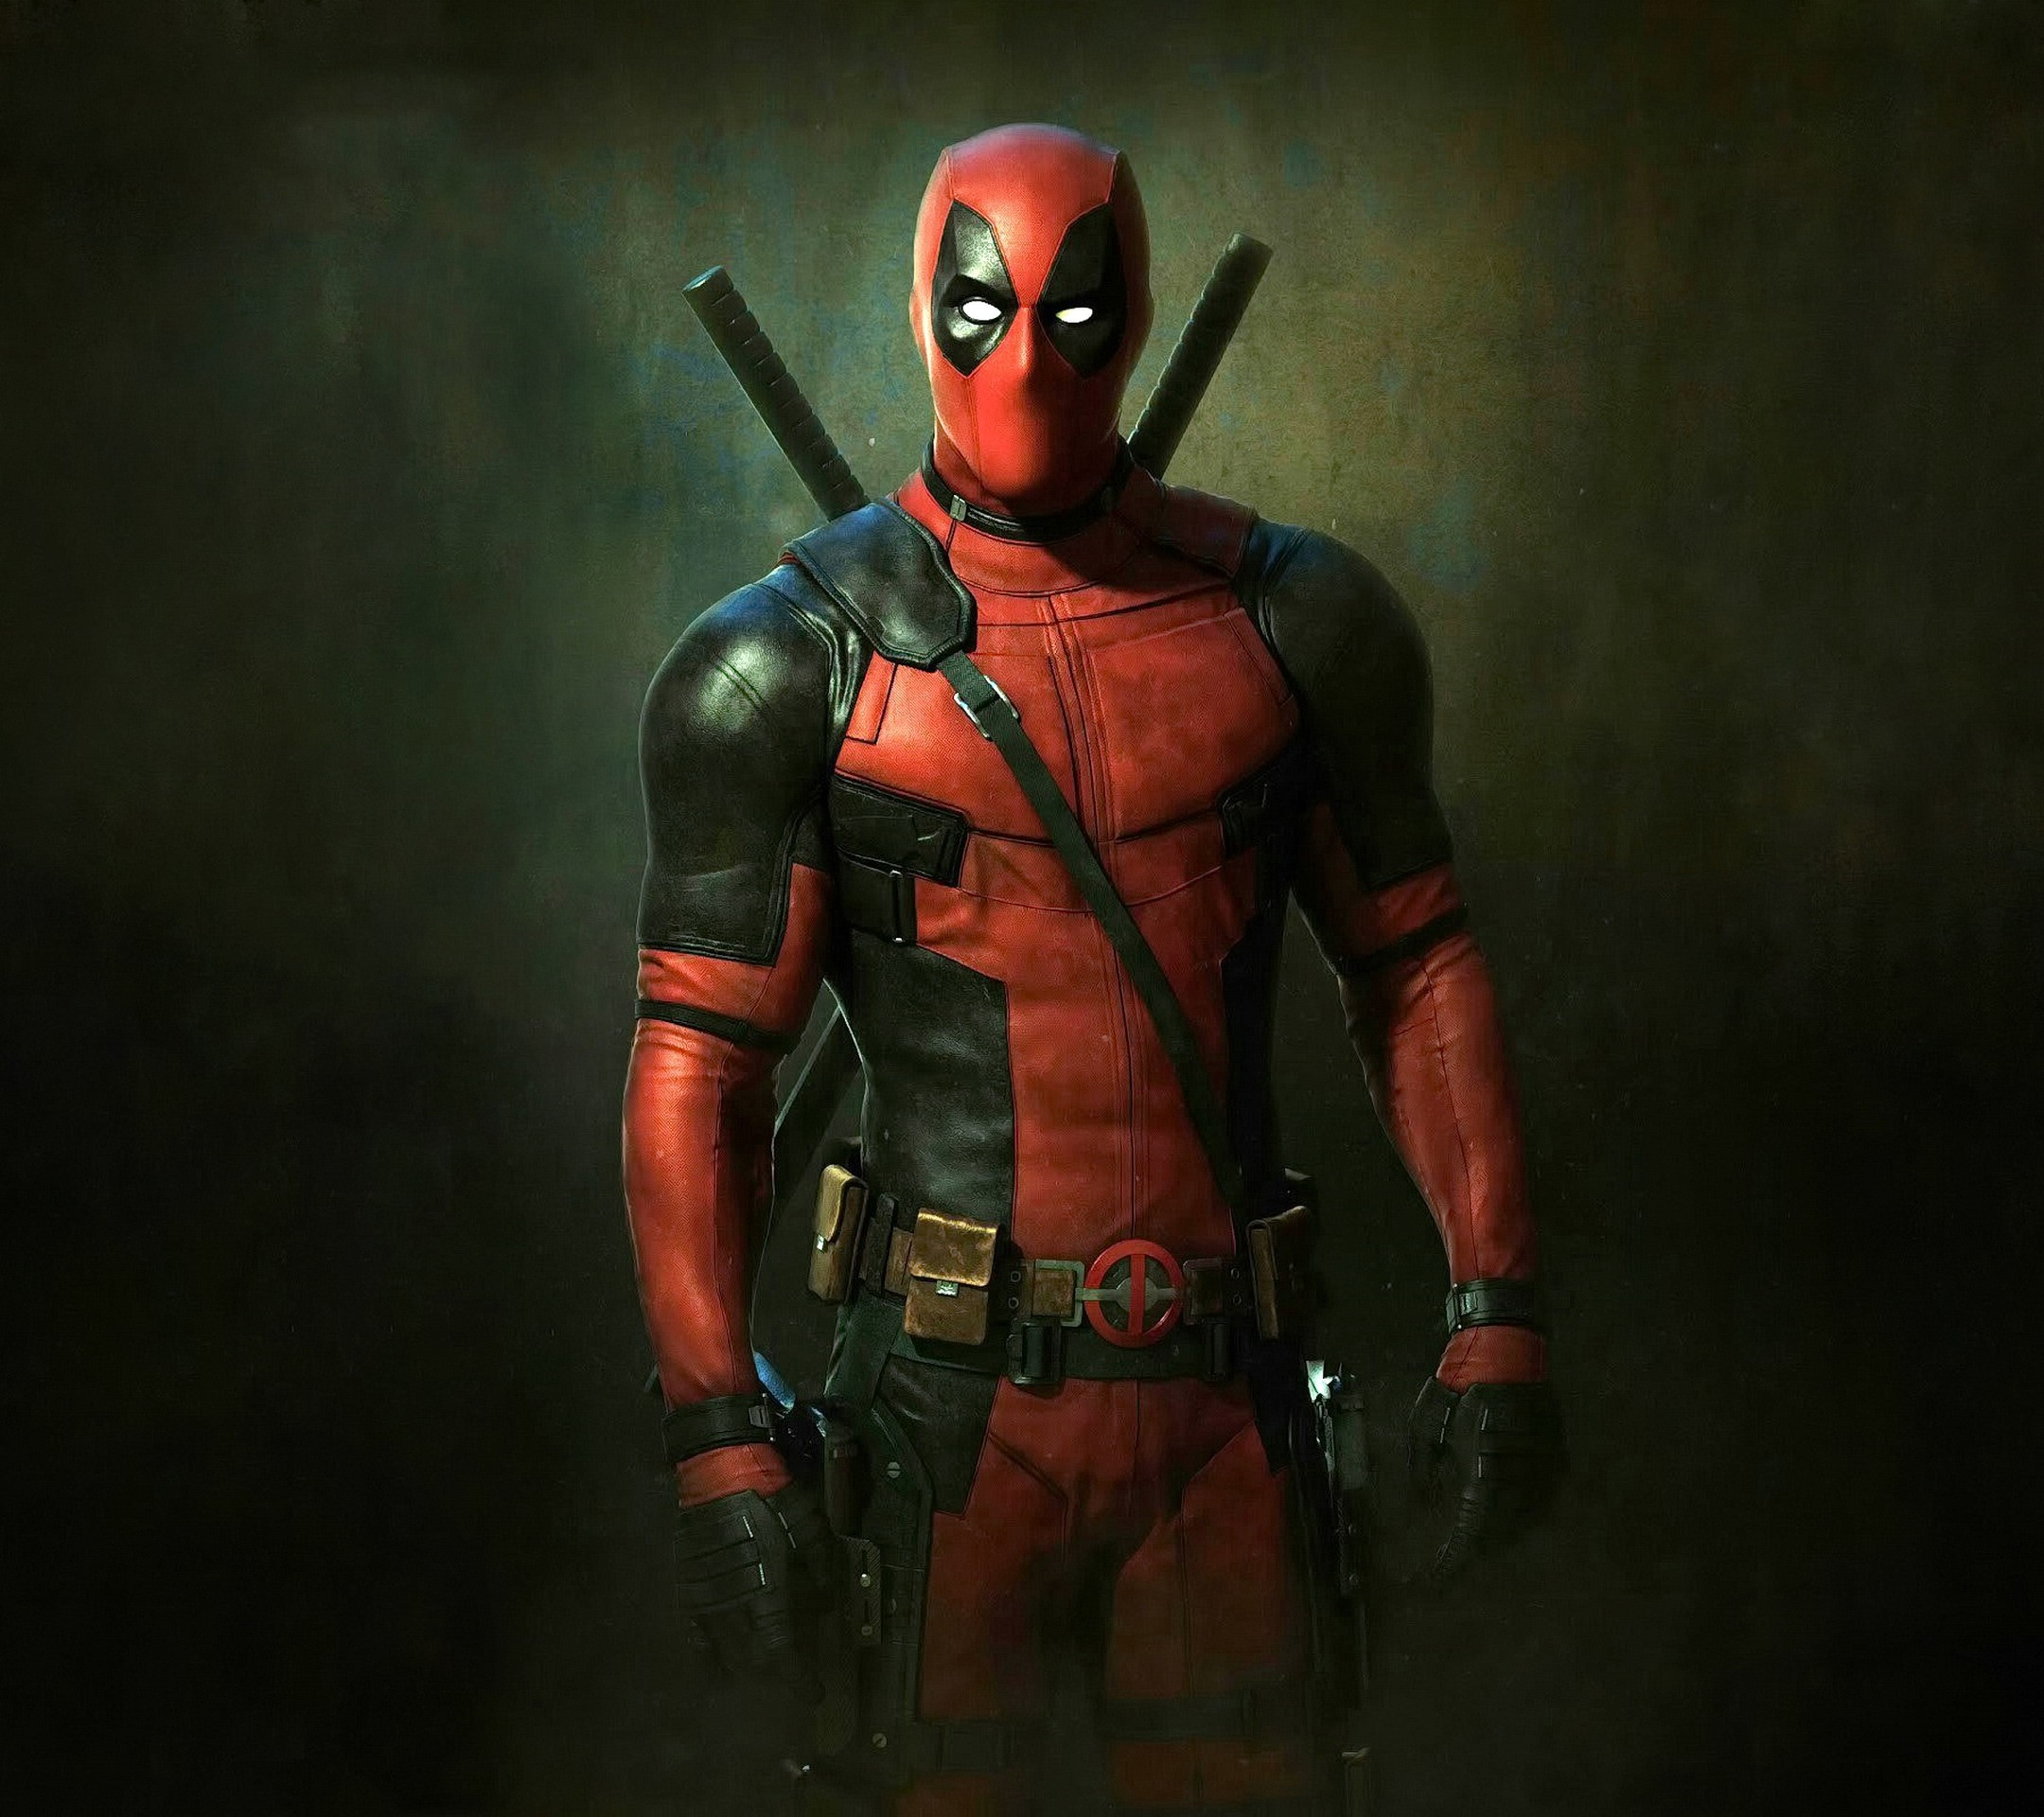 Hd 1600x900 Wallpaper: 2048x1152 Deadpool Ryan Renolds 4 2048x1152 Resolution HD